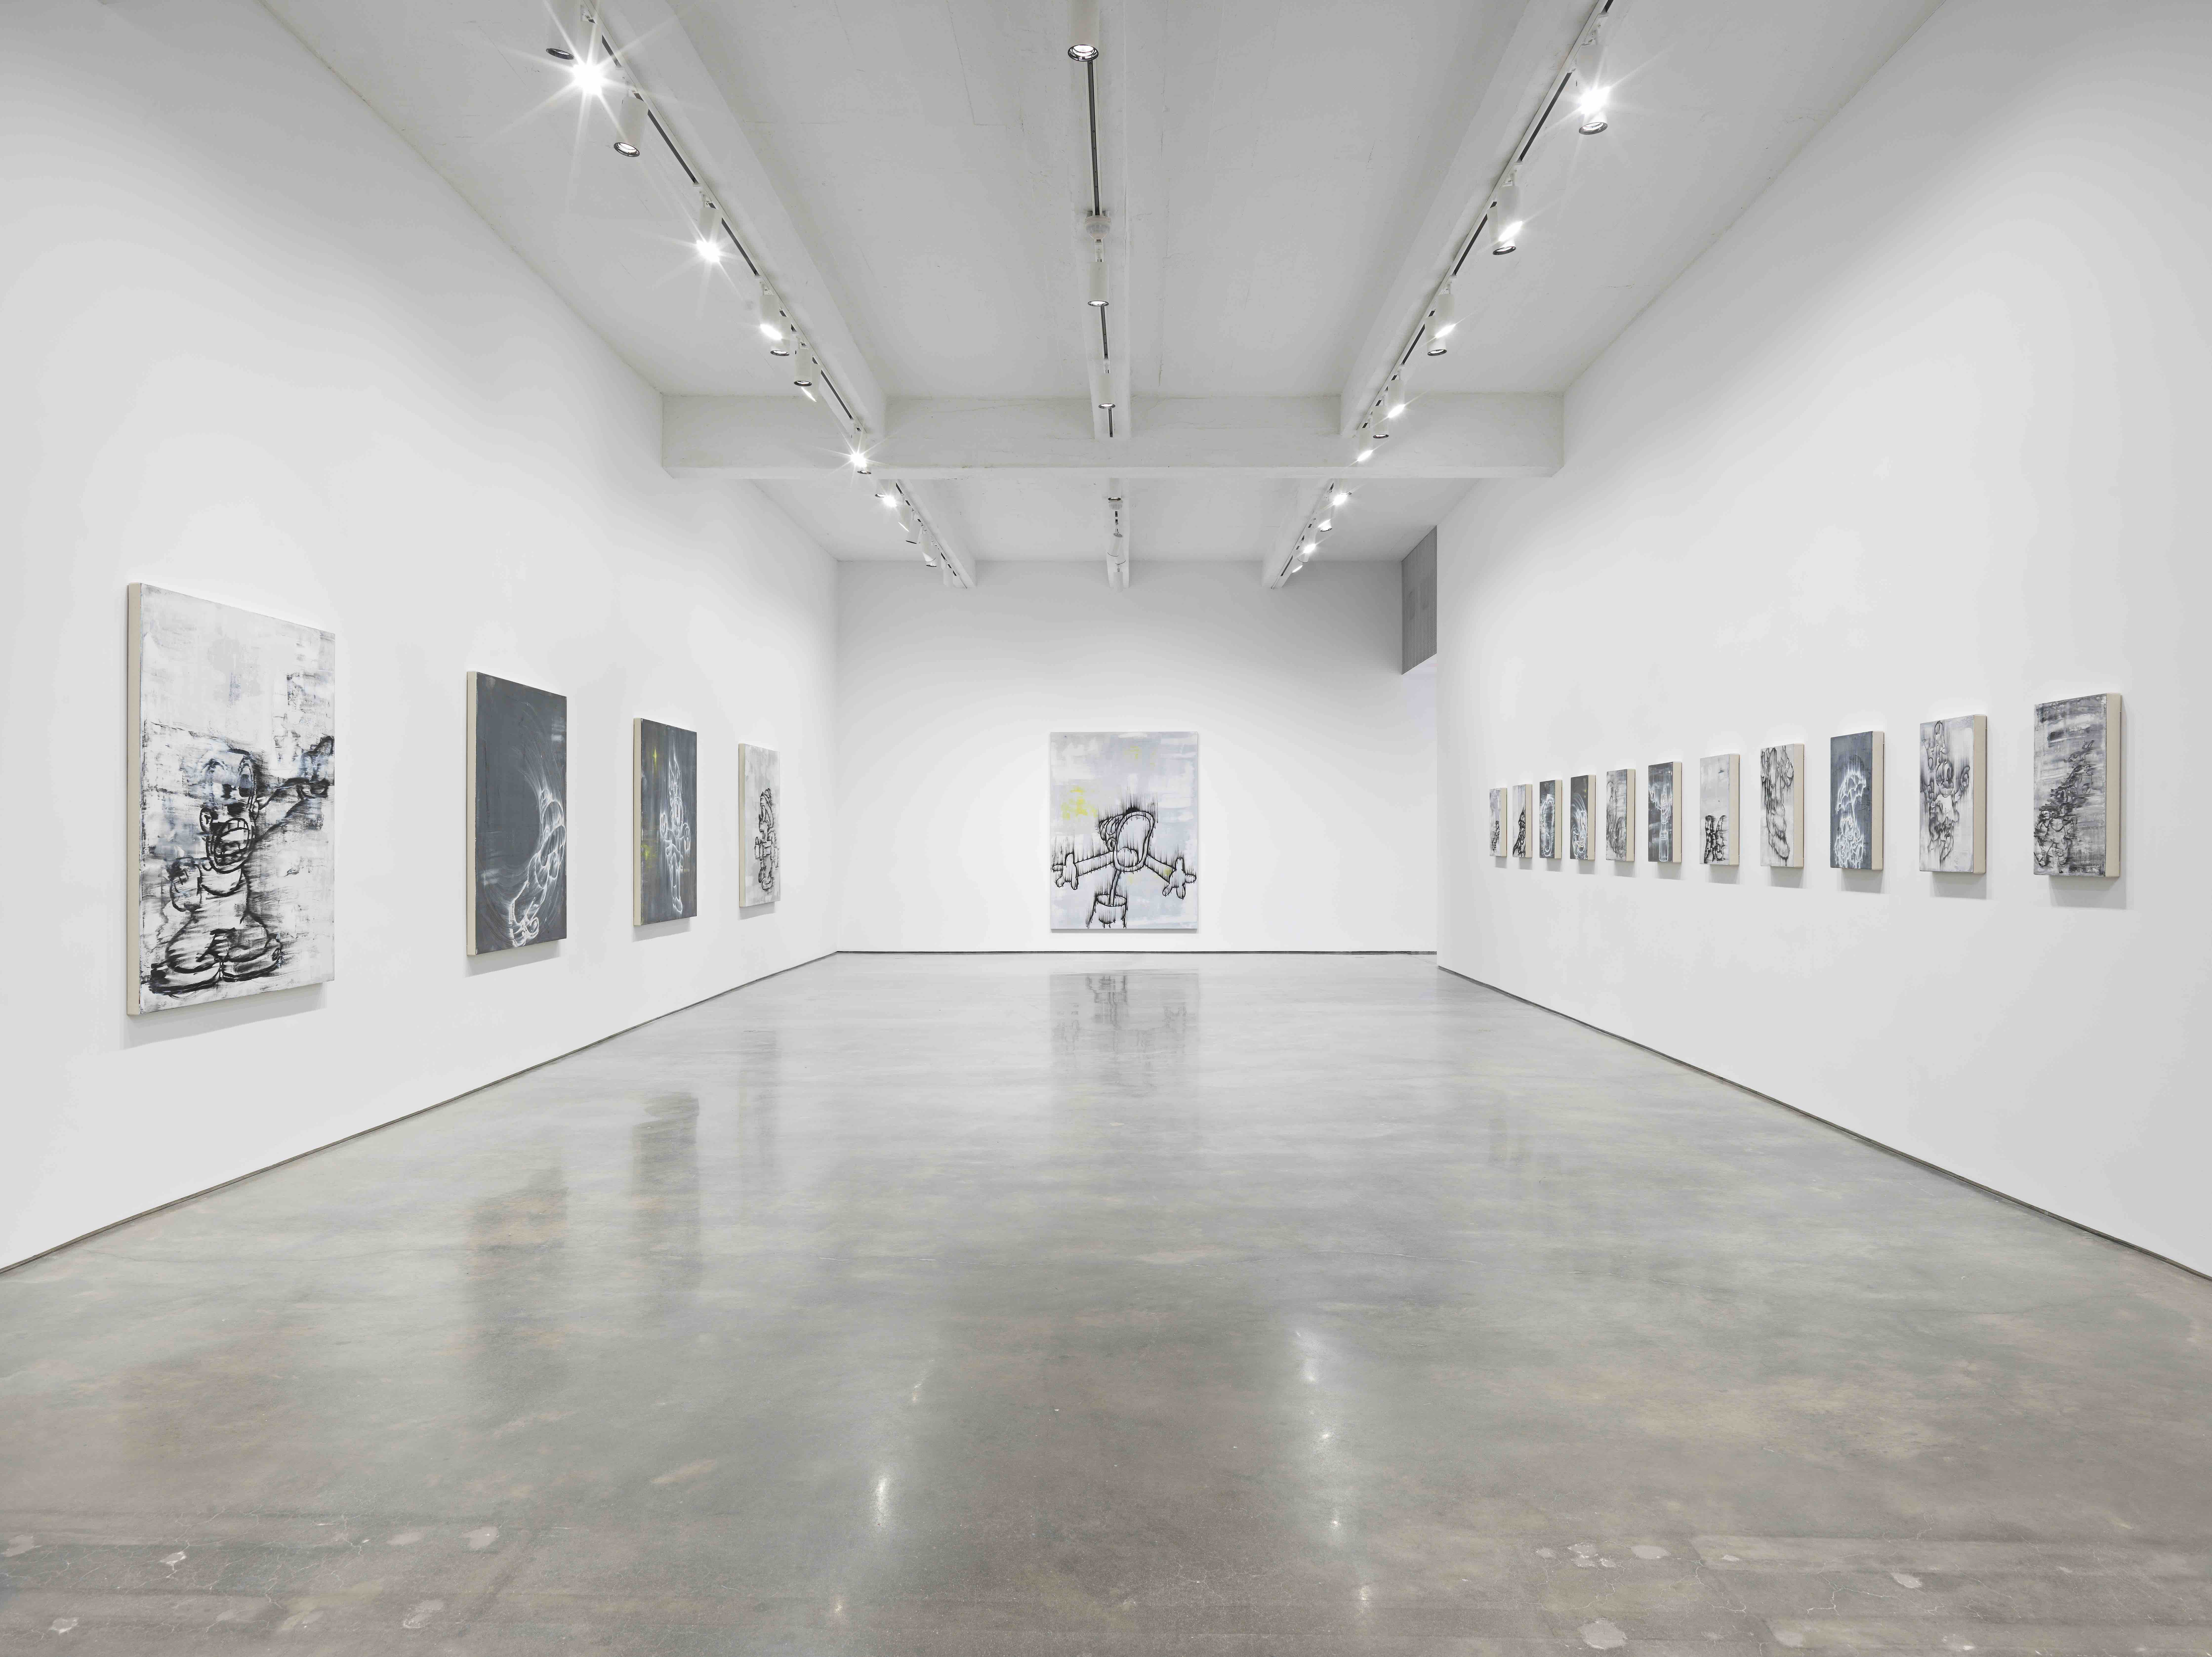 Gary Simmons, Screaming into the Ether. Installation view, 2020. Metro Pictures, New York. Courtesy of the artist and Metro Pictures, New York